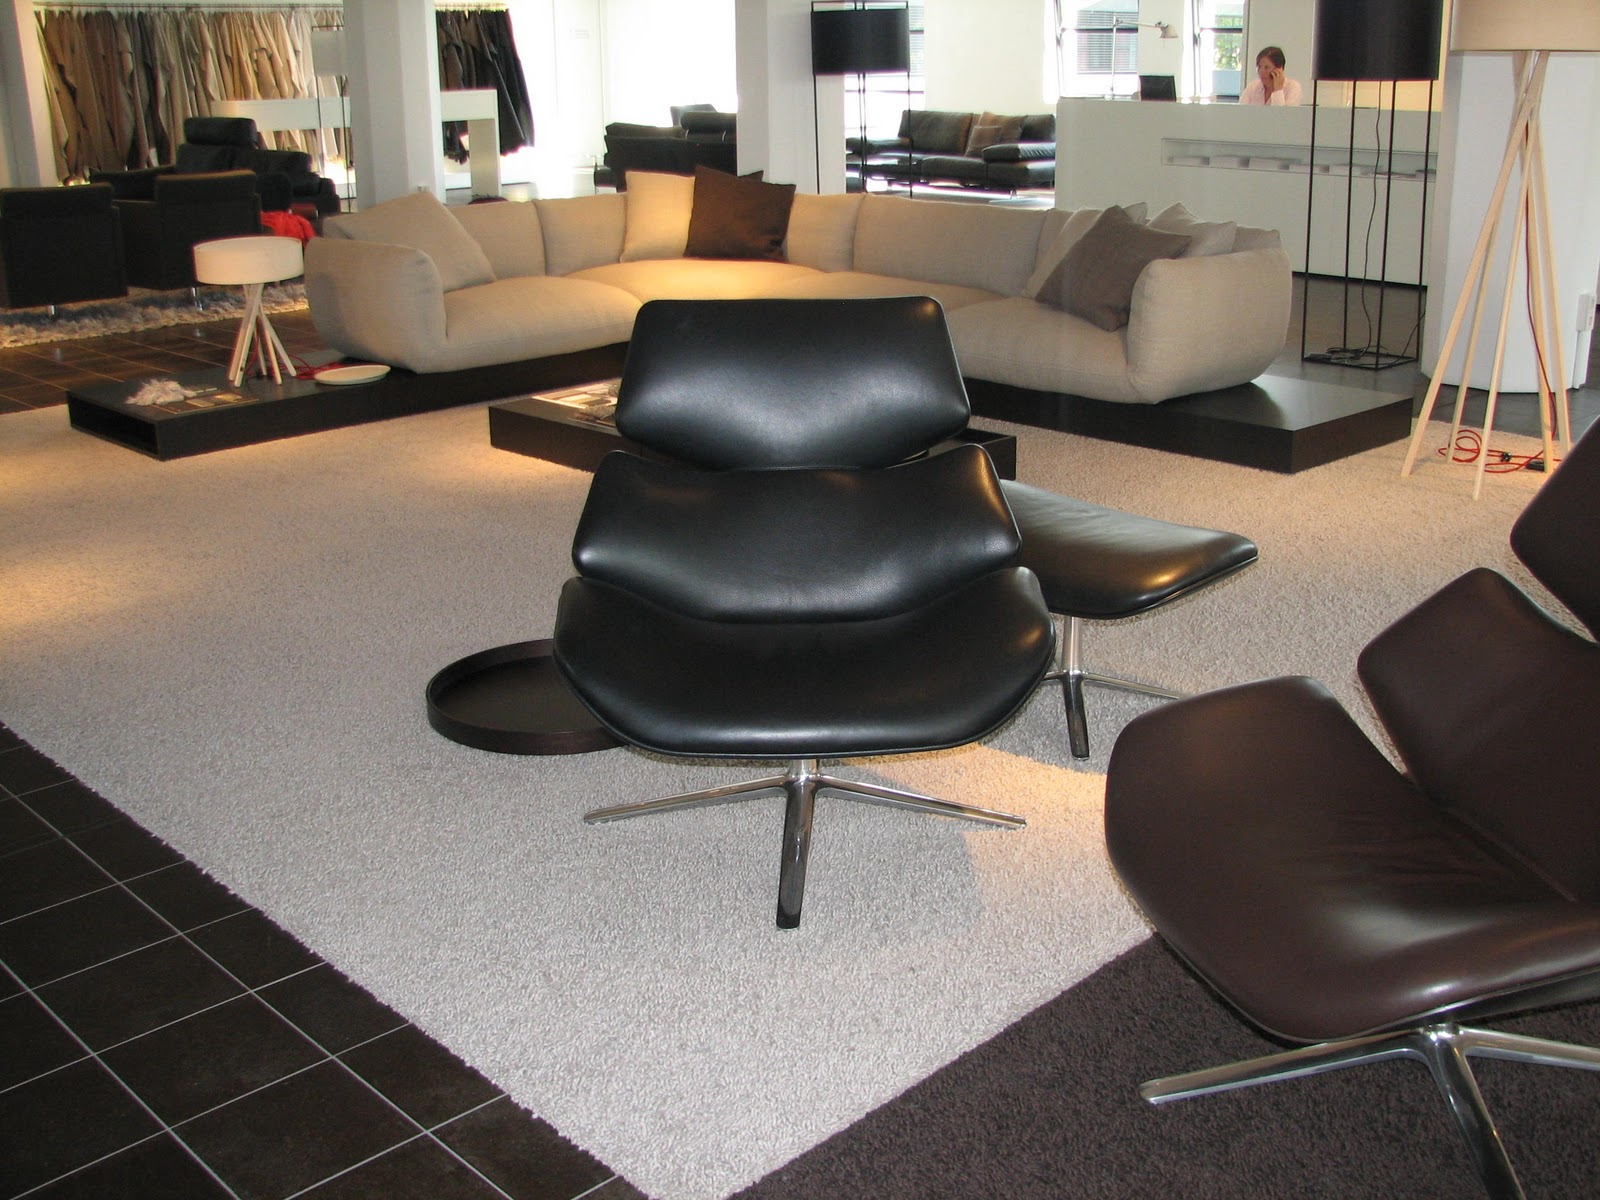 ploemen interieur showroom cor en interl bke in rheda wiedenbr ck. Black Bedroom Furniture Sets. Home Design Ideas